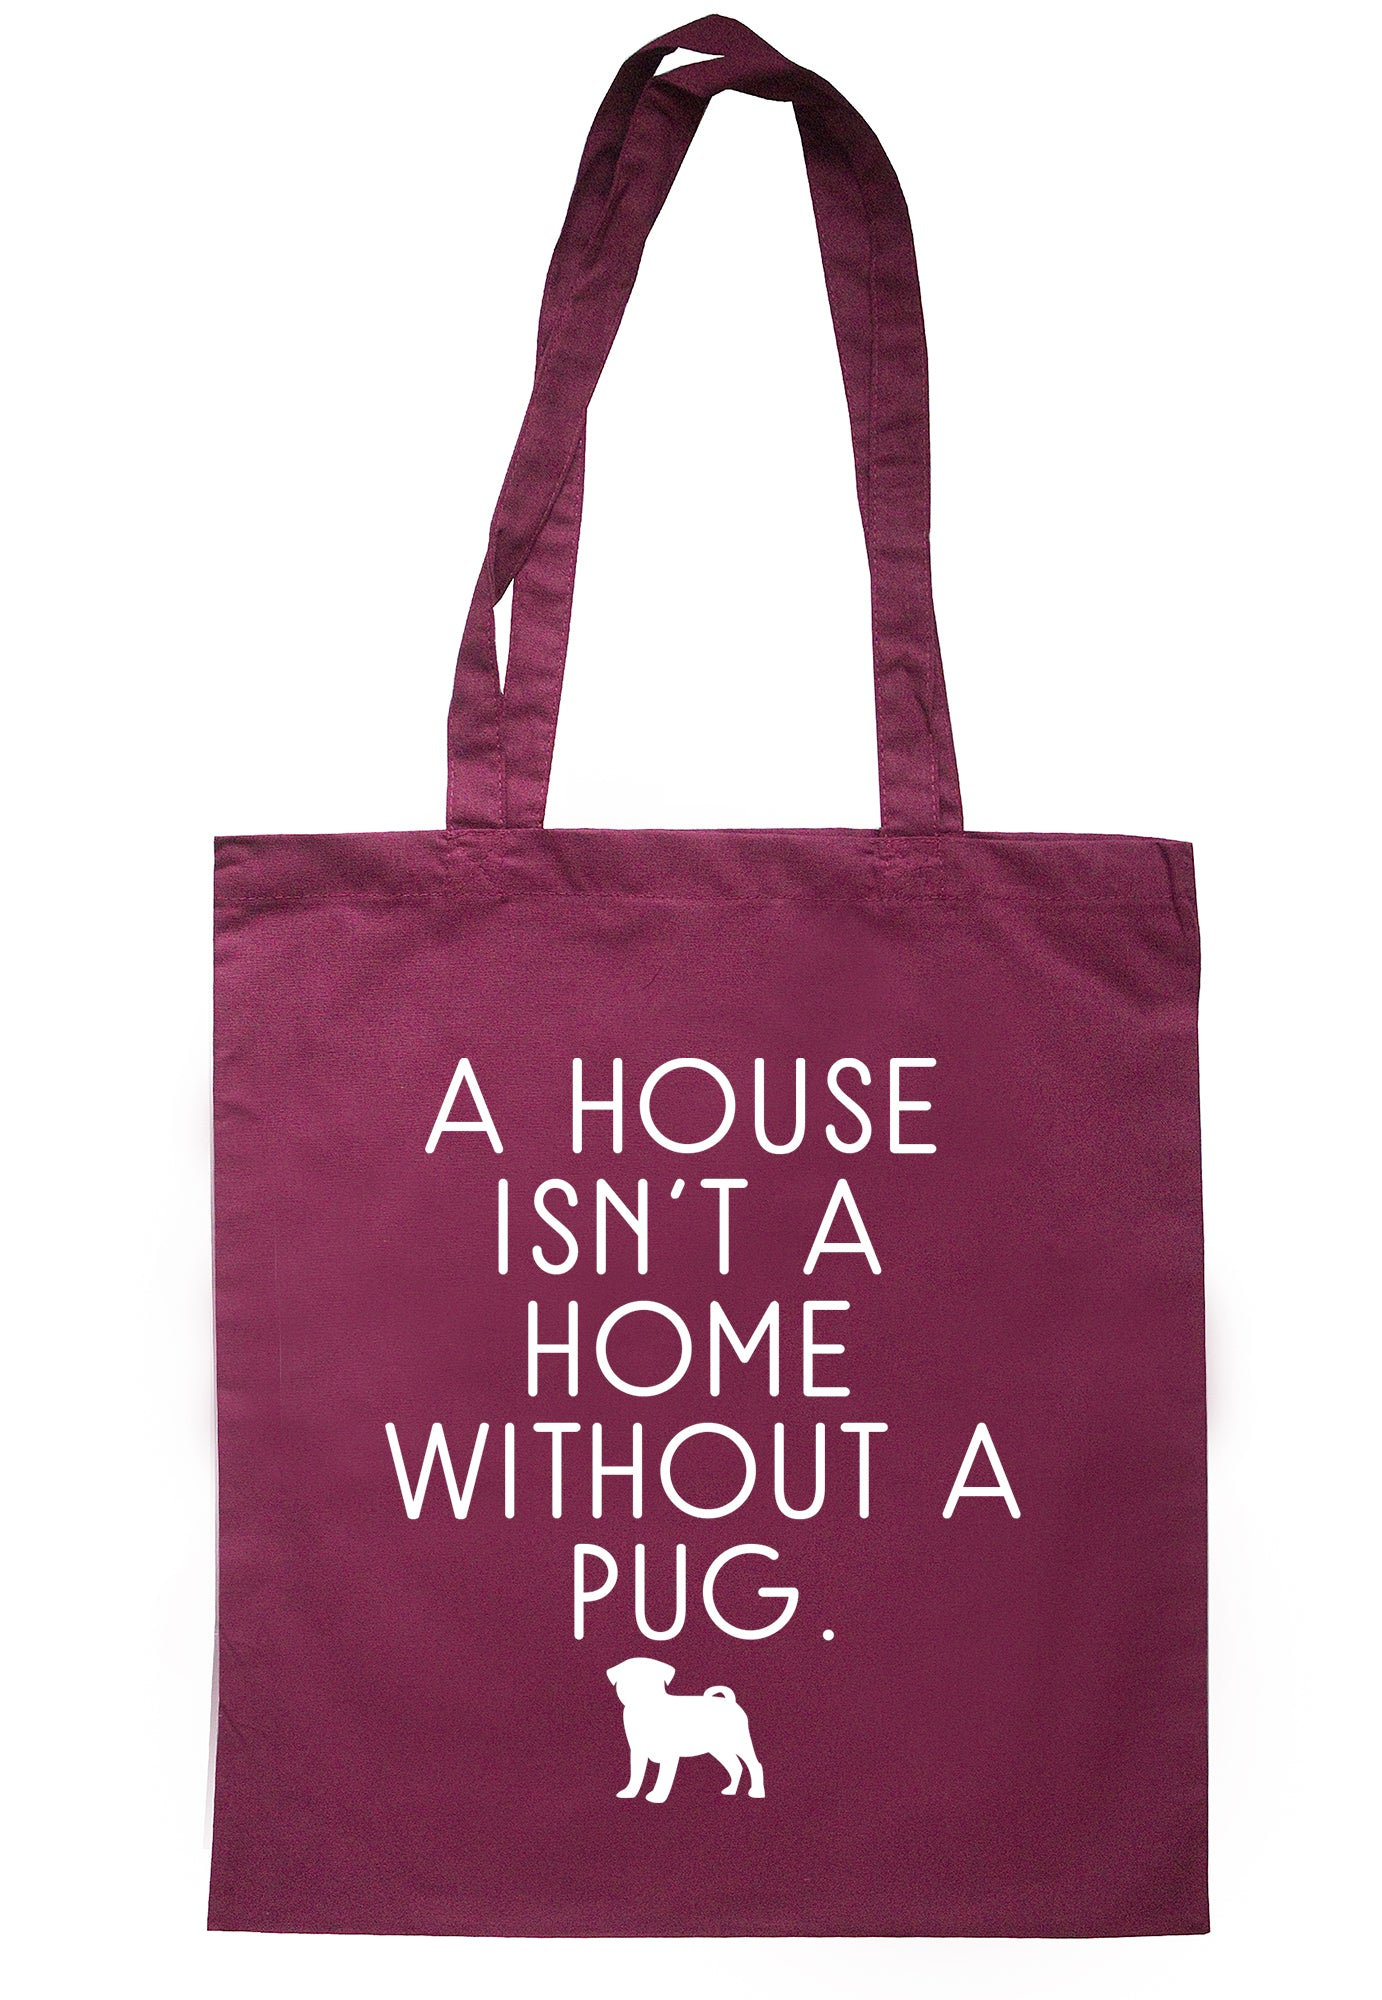 A House Isn't A Home Without A Pug Tote Bag S0614